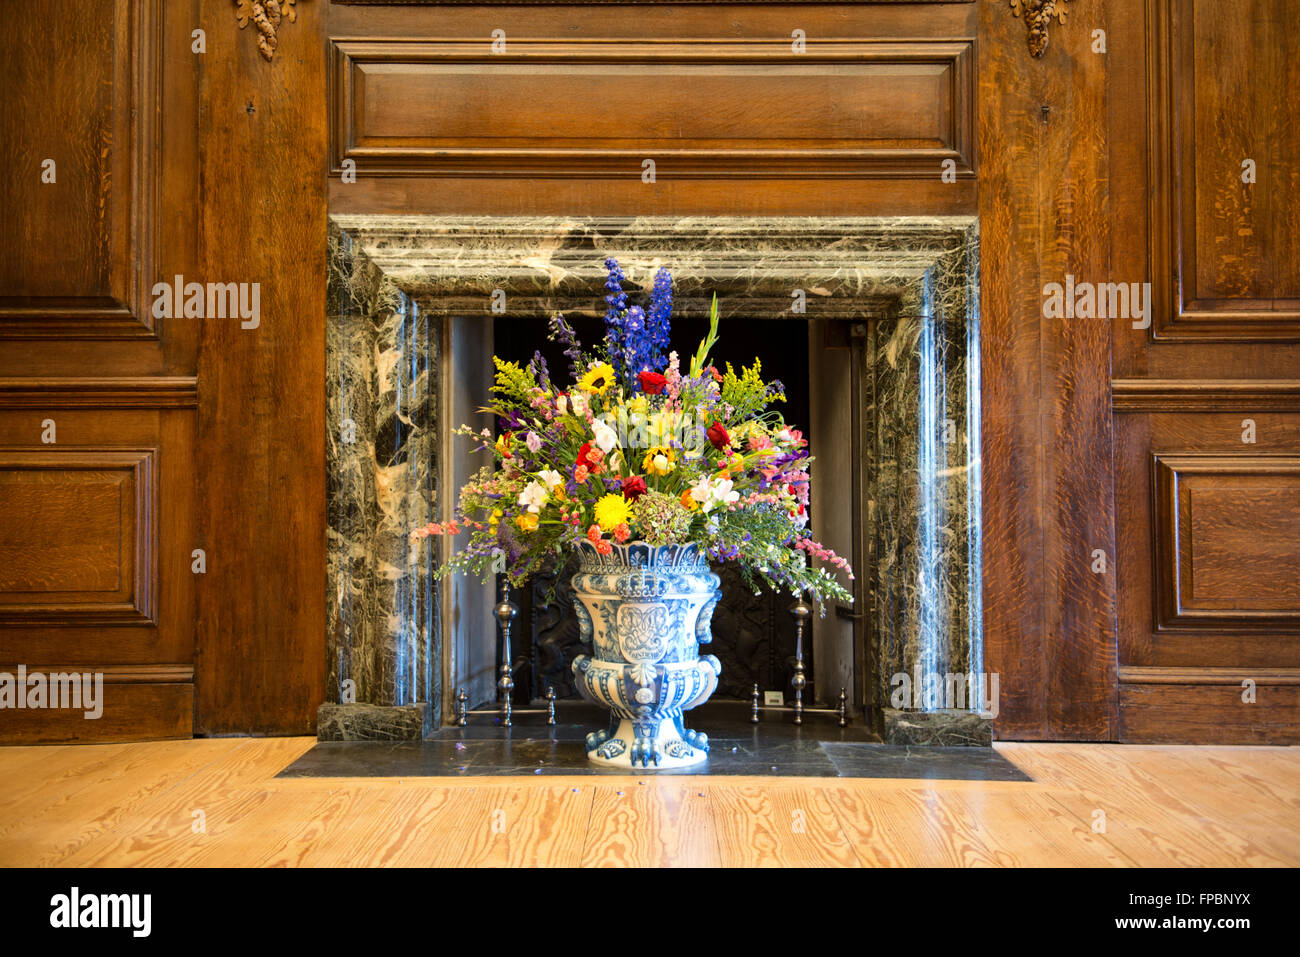 Flower arrangement of colorful summer blooms in a blue and white flower arrangement of colorful summer blooms in a blue and white pottery urn in a historical marble fireplace with wood paneling on the walls izmirmasajfo